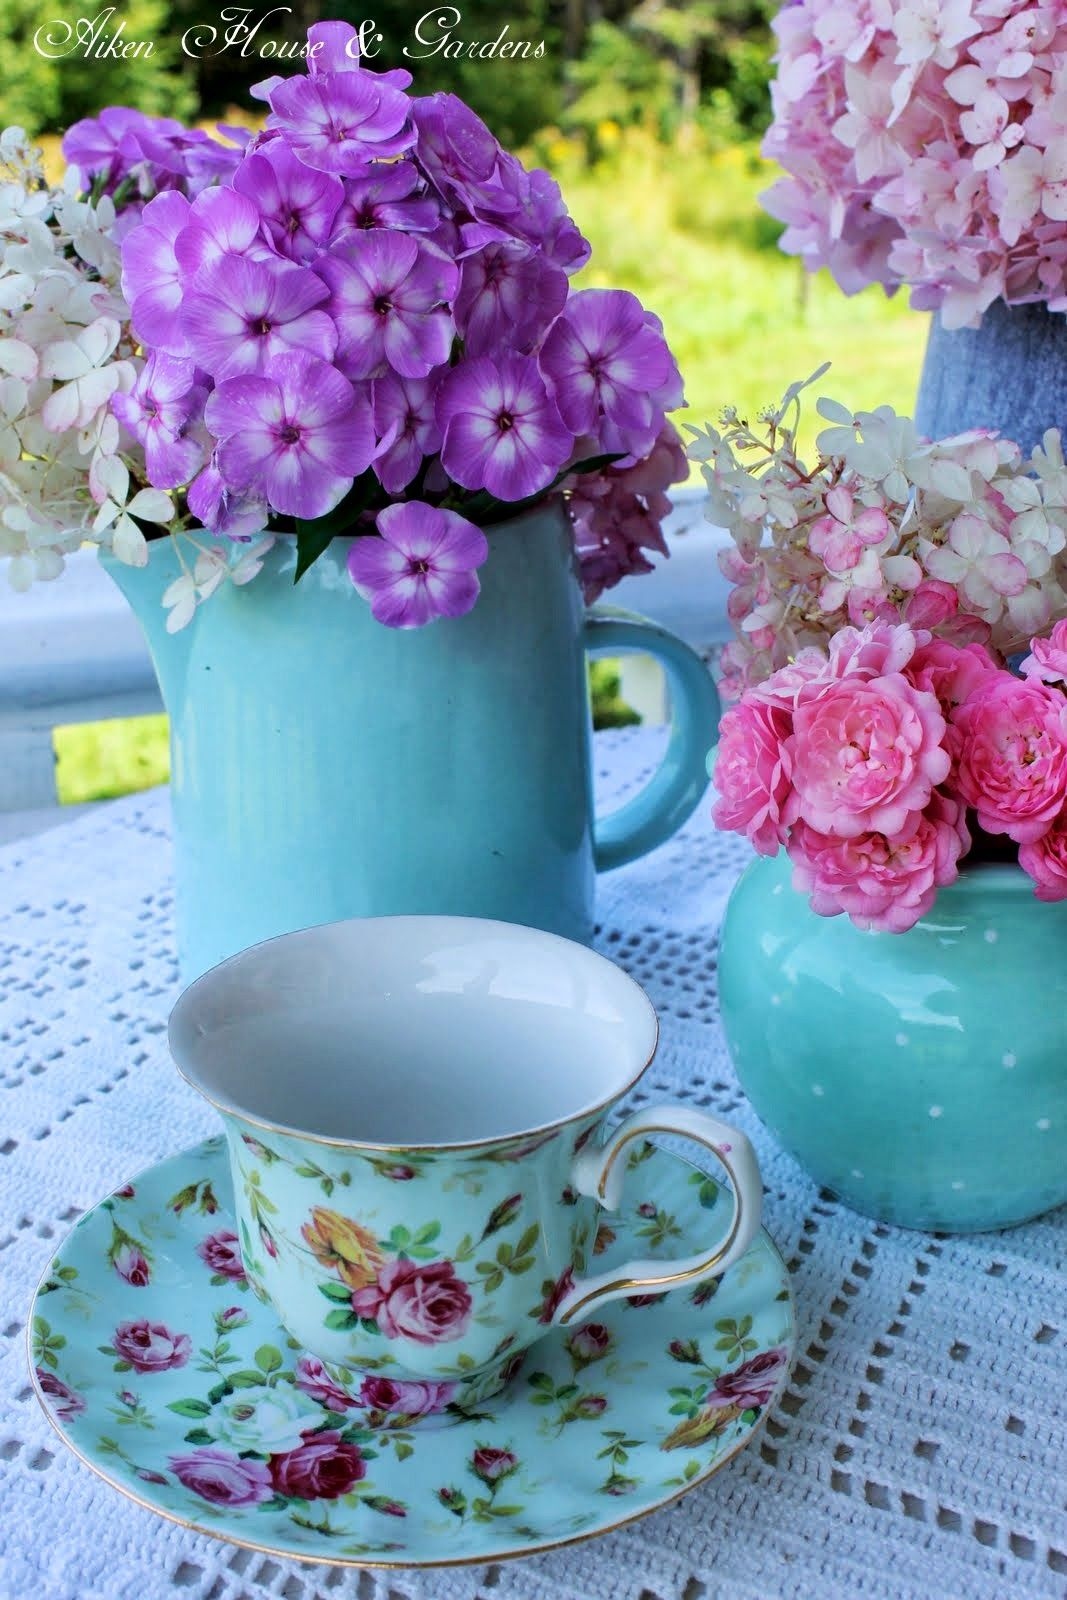 Use purple flowers in white or clear pitchers